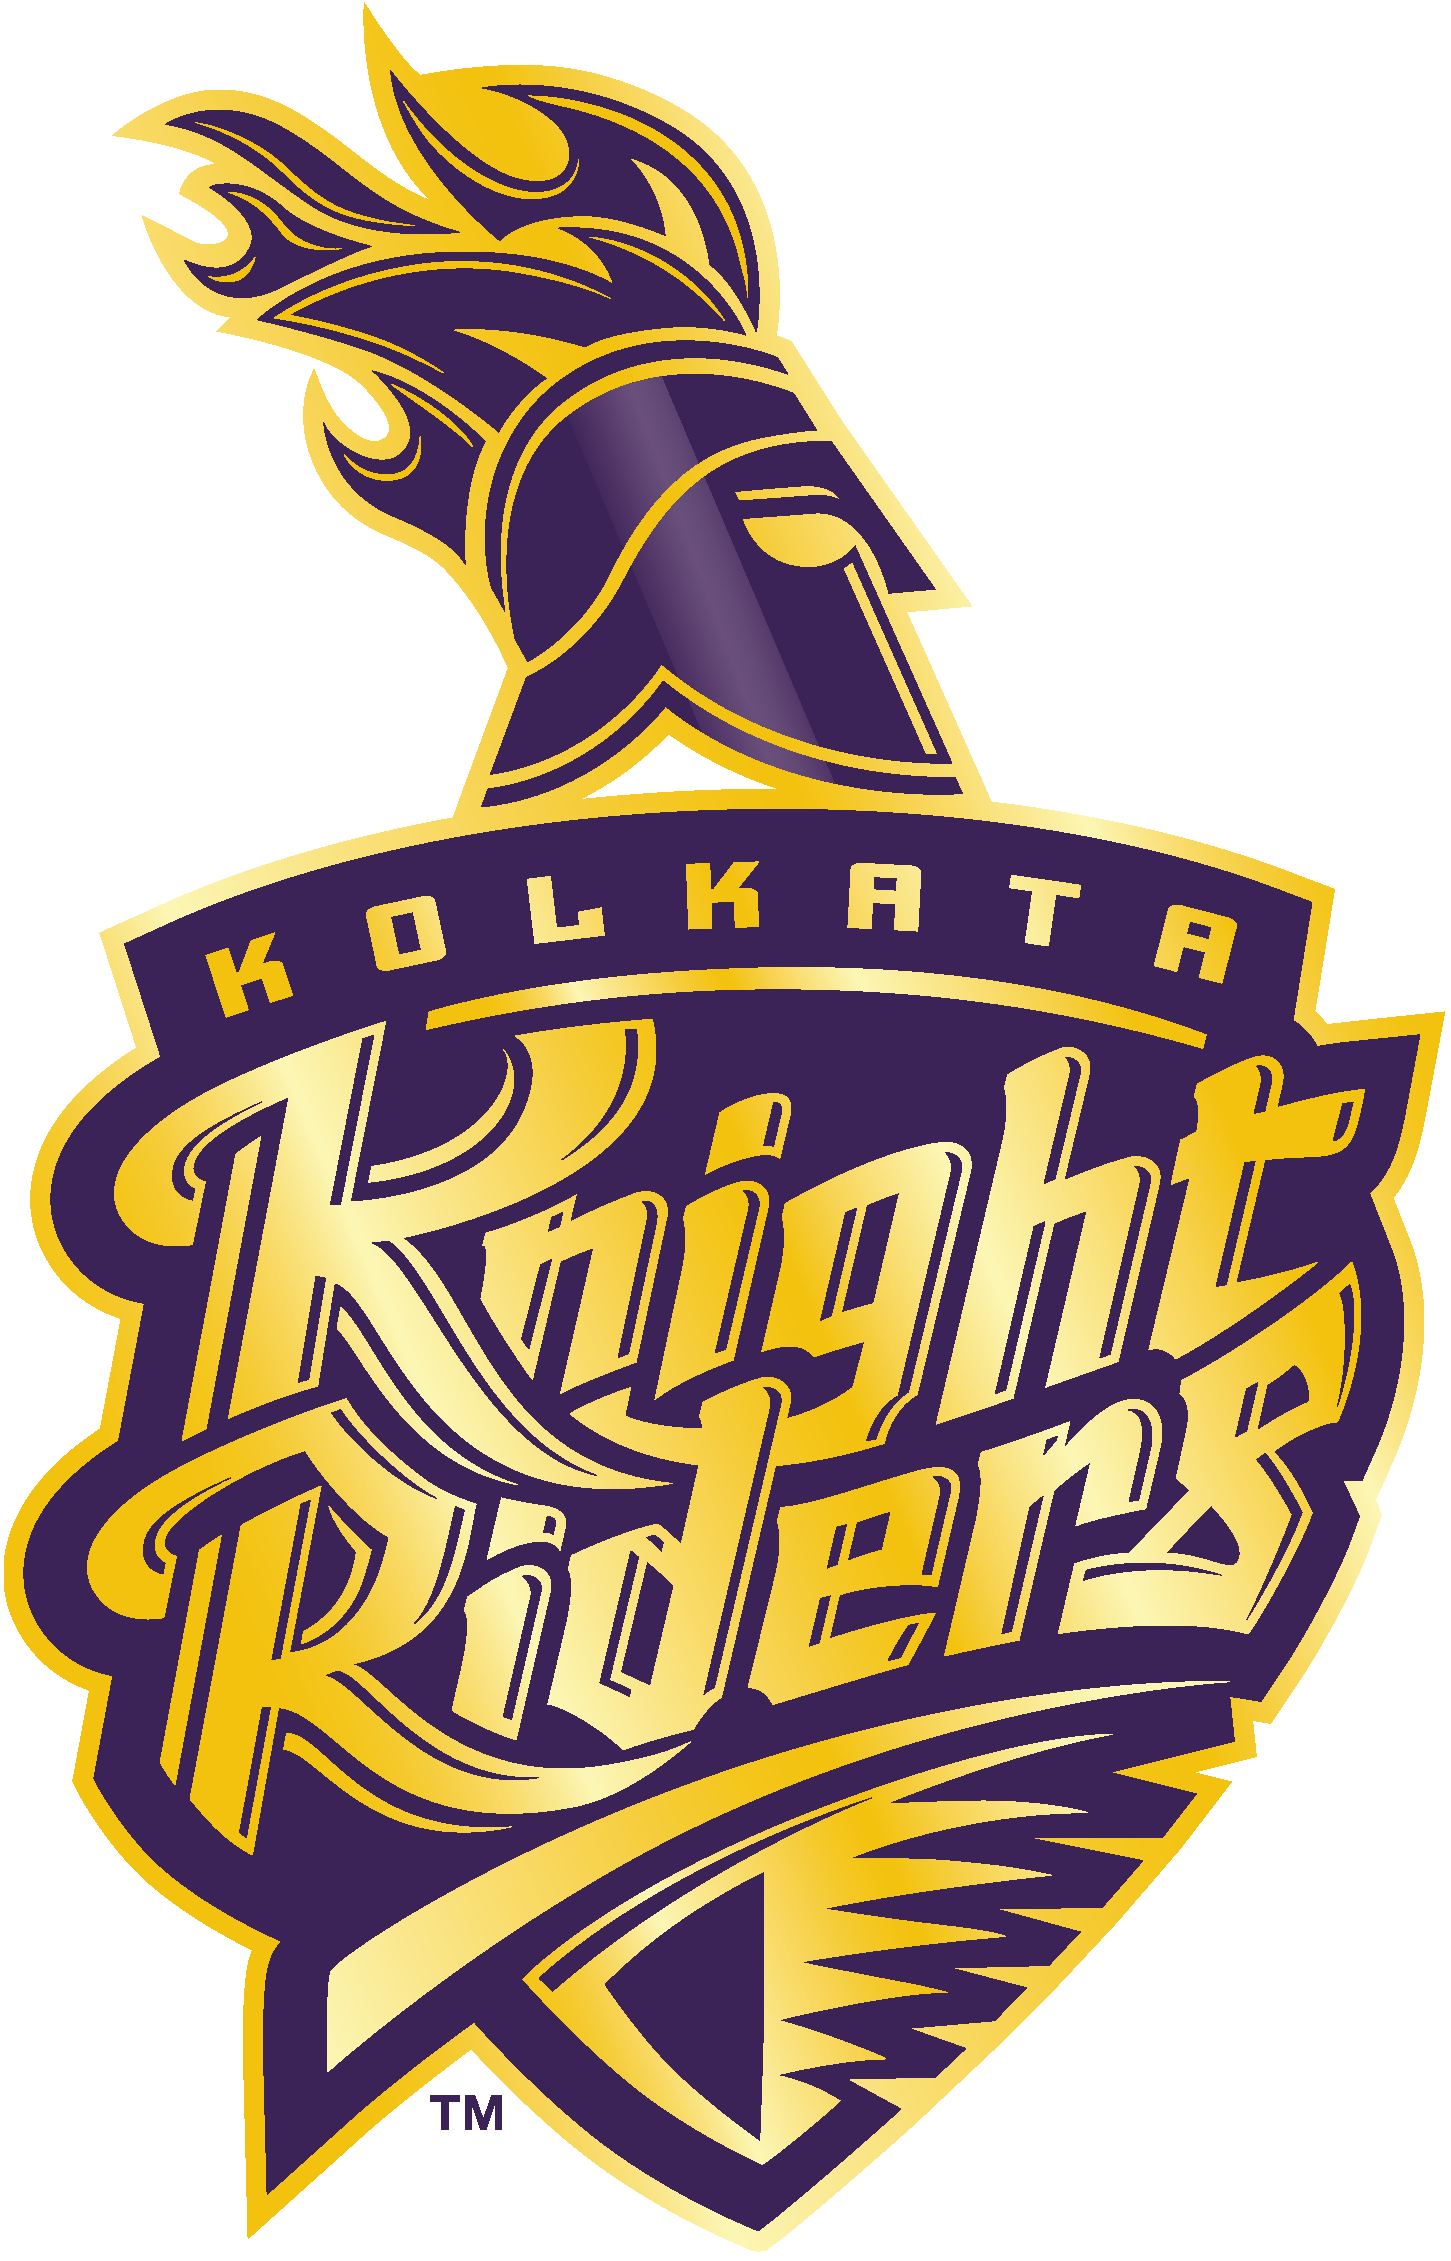 Kolkata Knight Riders Logo [kkr.in] Download Vector